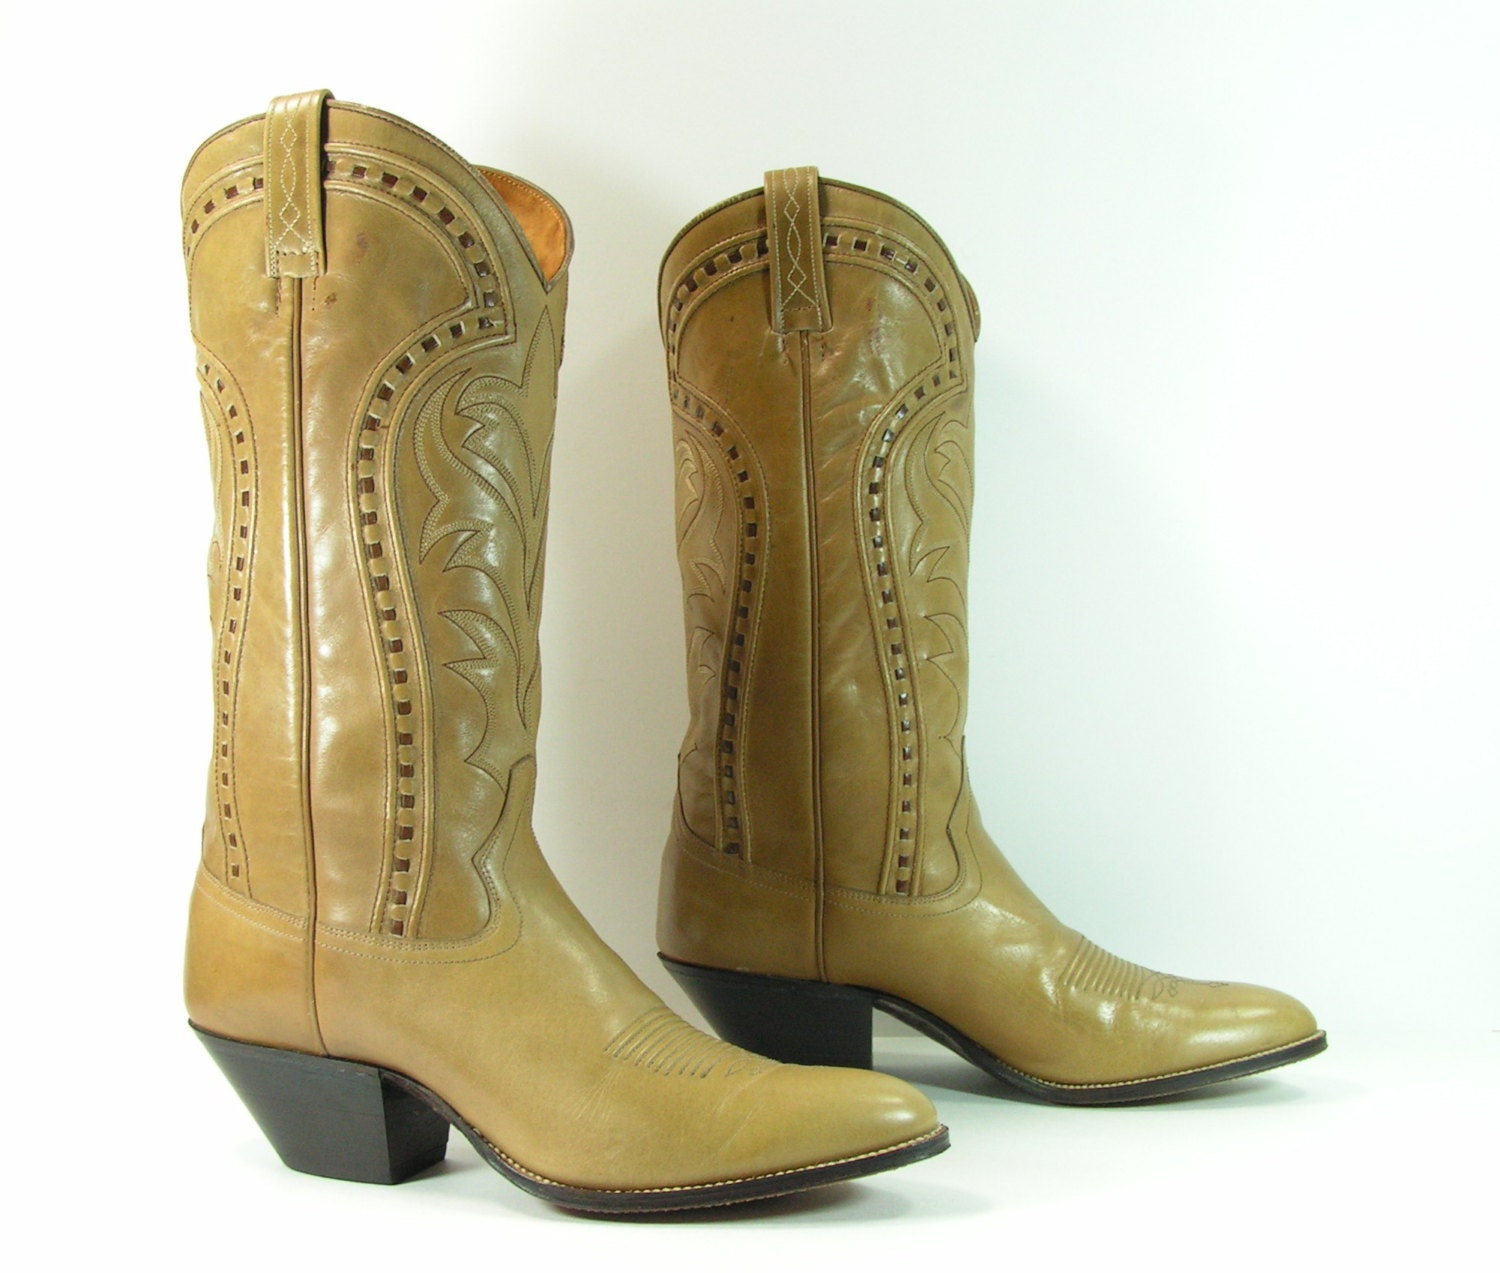 vintage cowboy boots s 8 c light brown camel